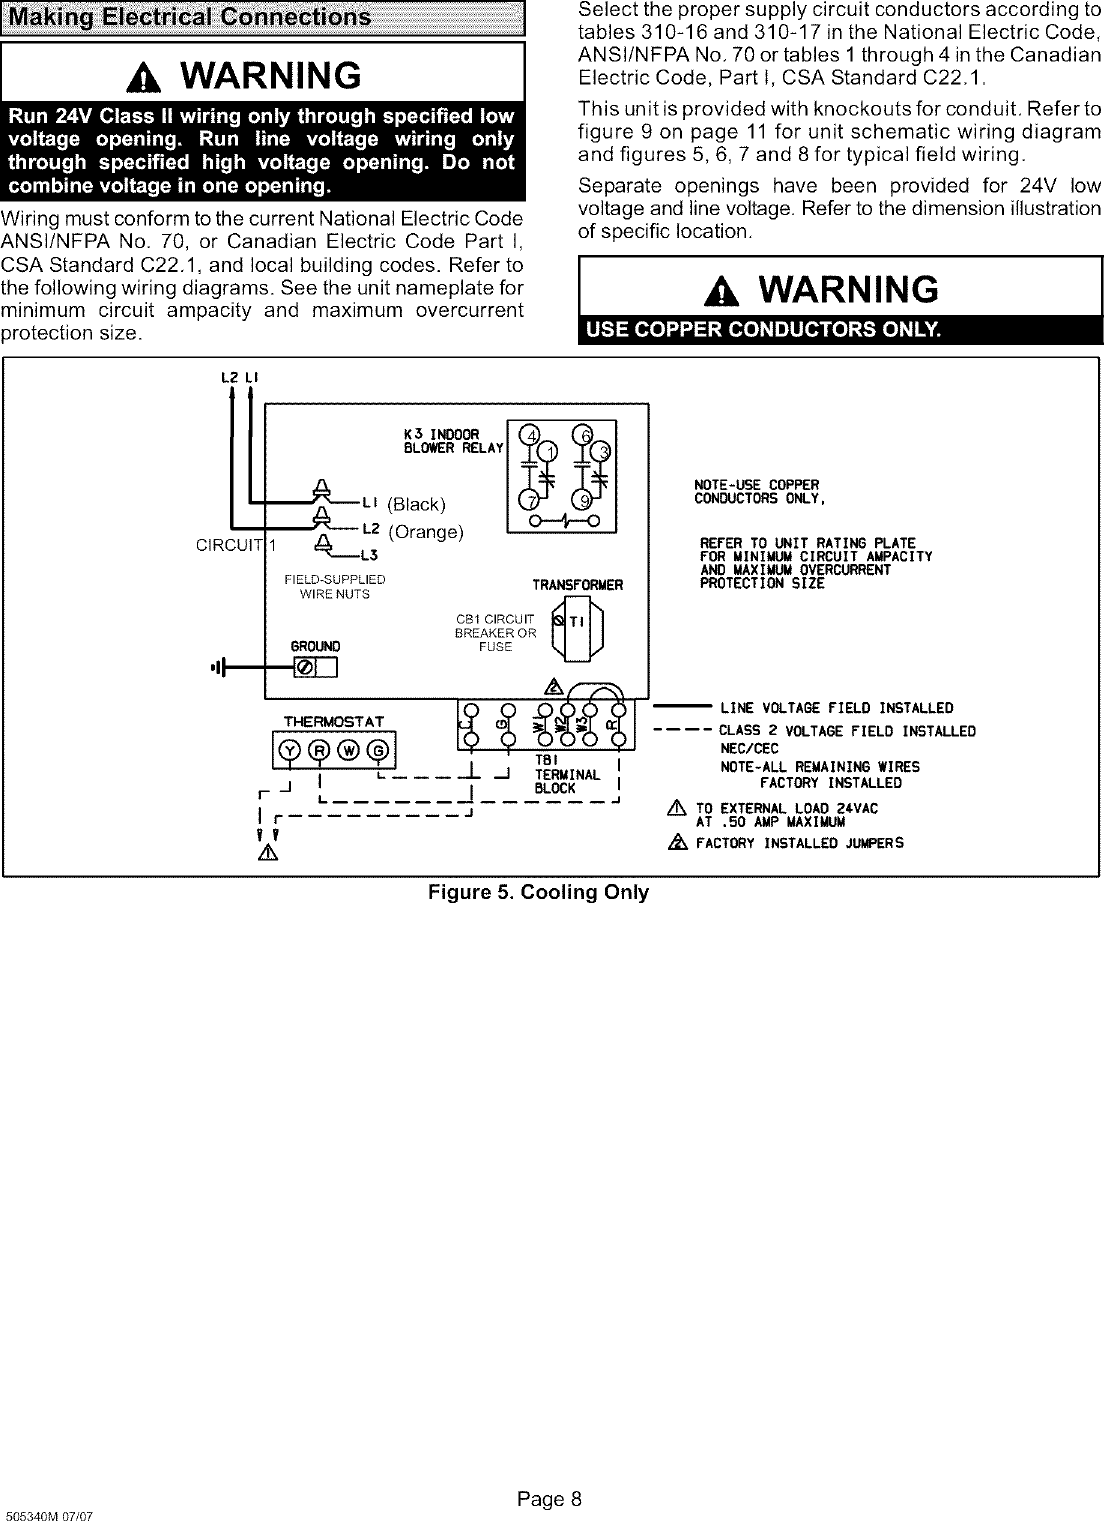 Lennox Air Handler Indoor Blowerevap Manual L0805327 Wiring Schematic Page 8 Of 12